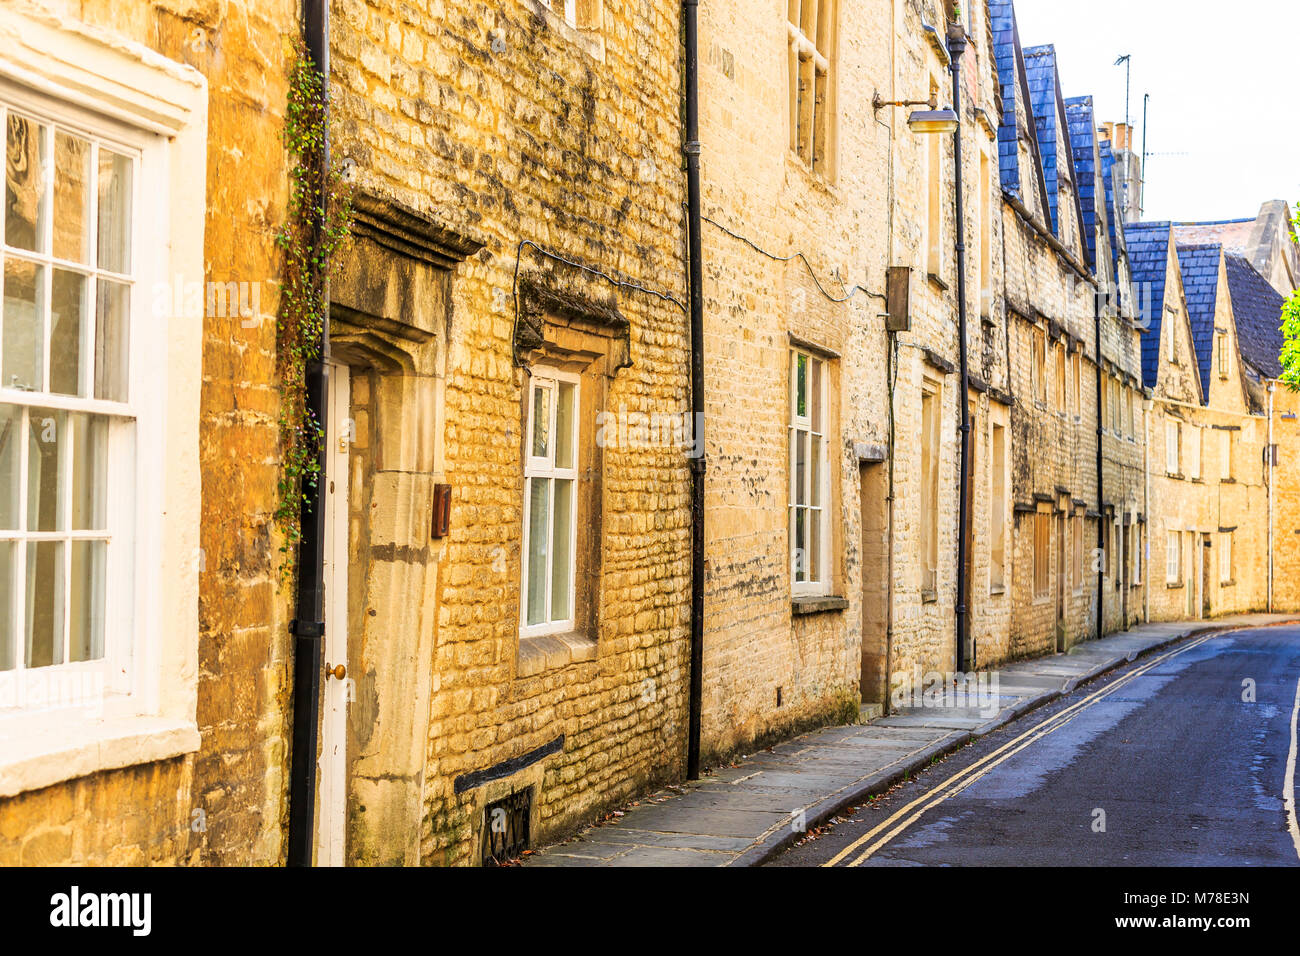 A row of Cotswold stone  cottages in Cirencester, Gloucestershire. - Stock Image